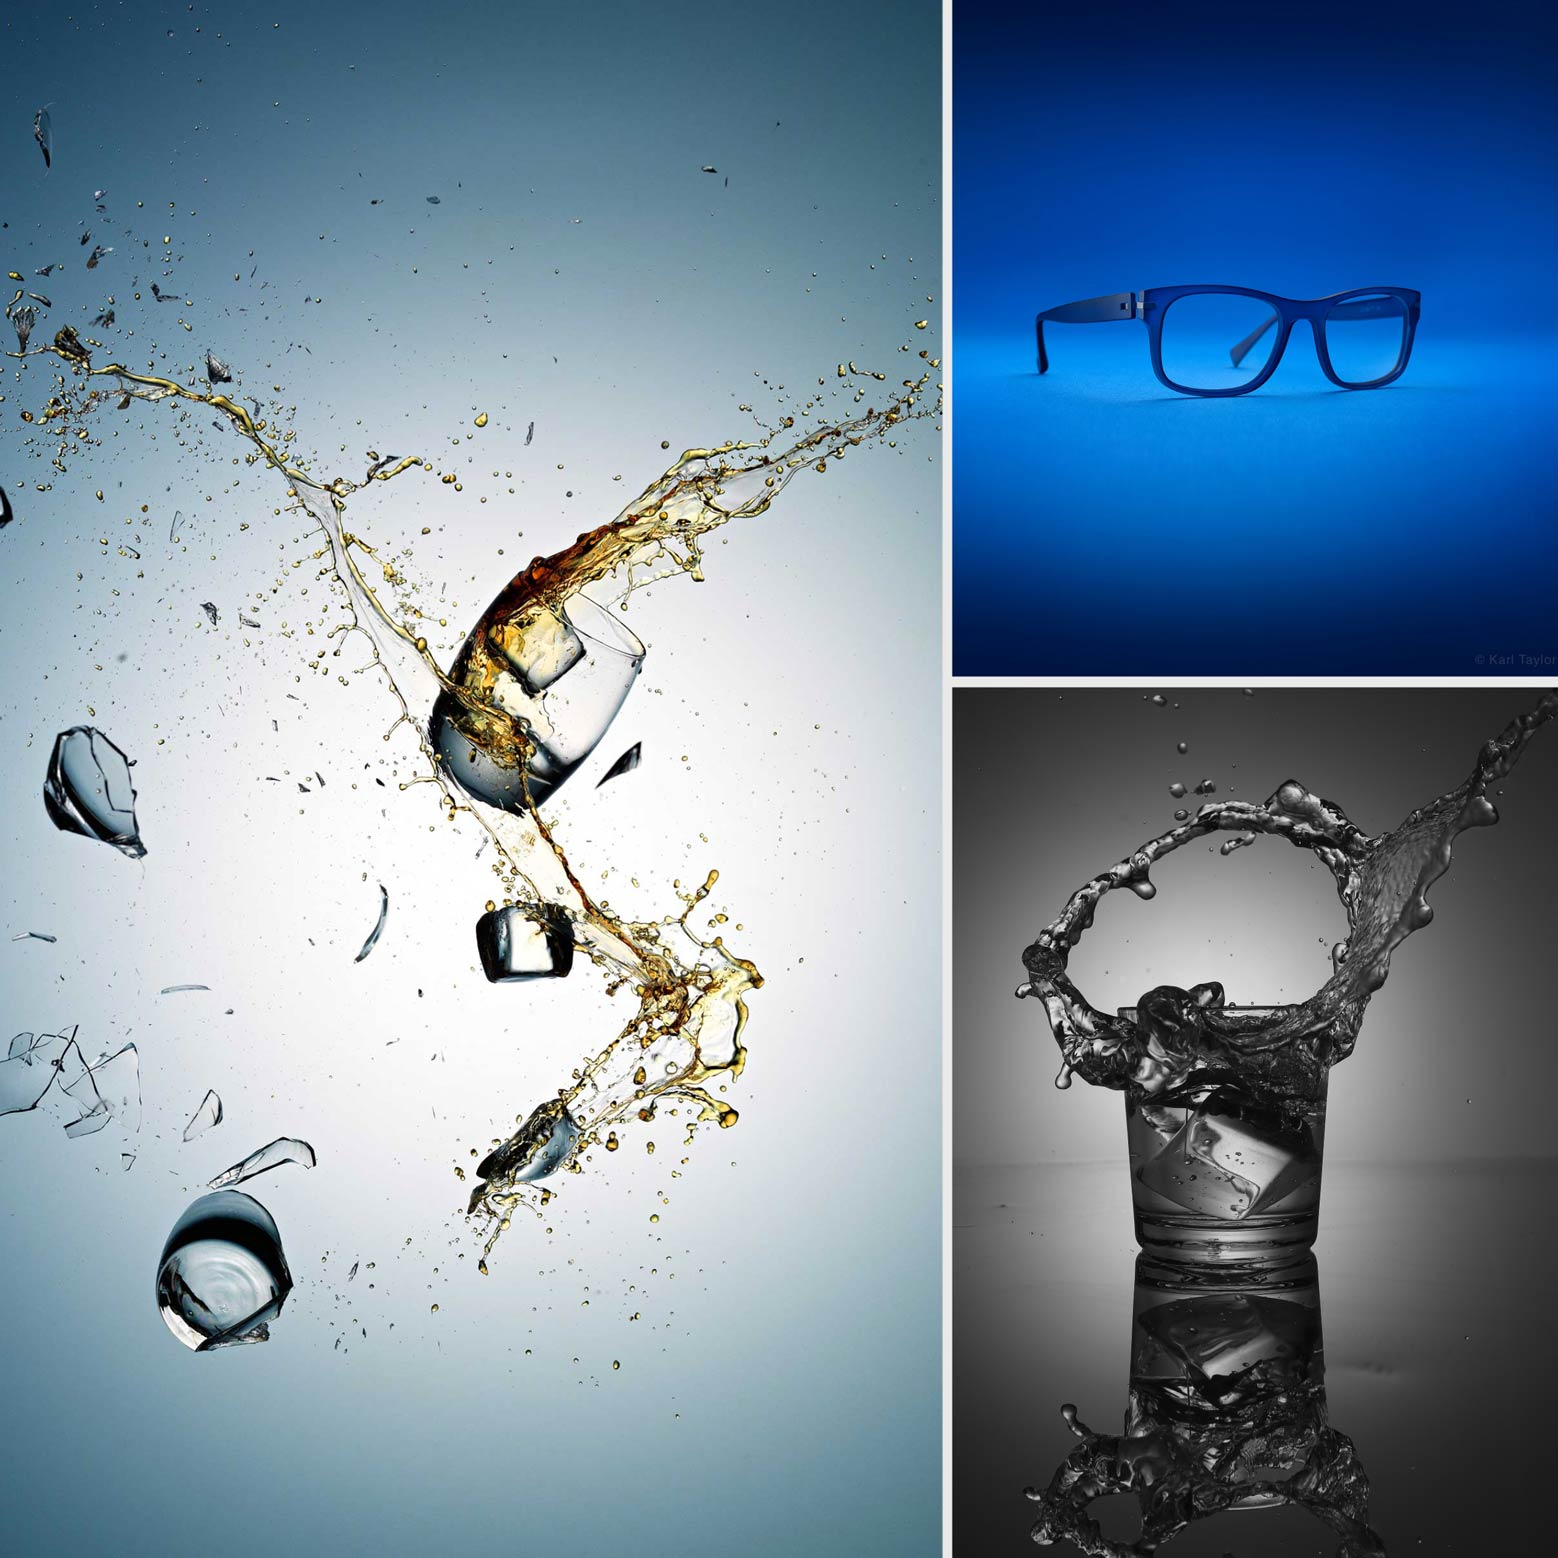 Photographs of glass